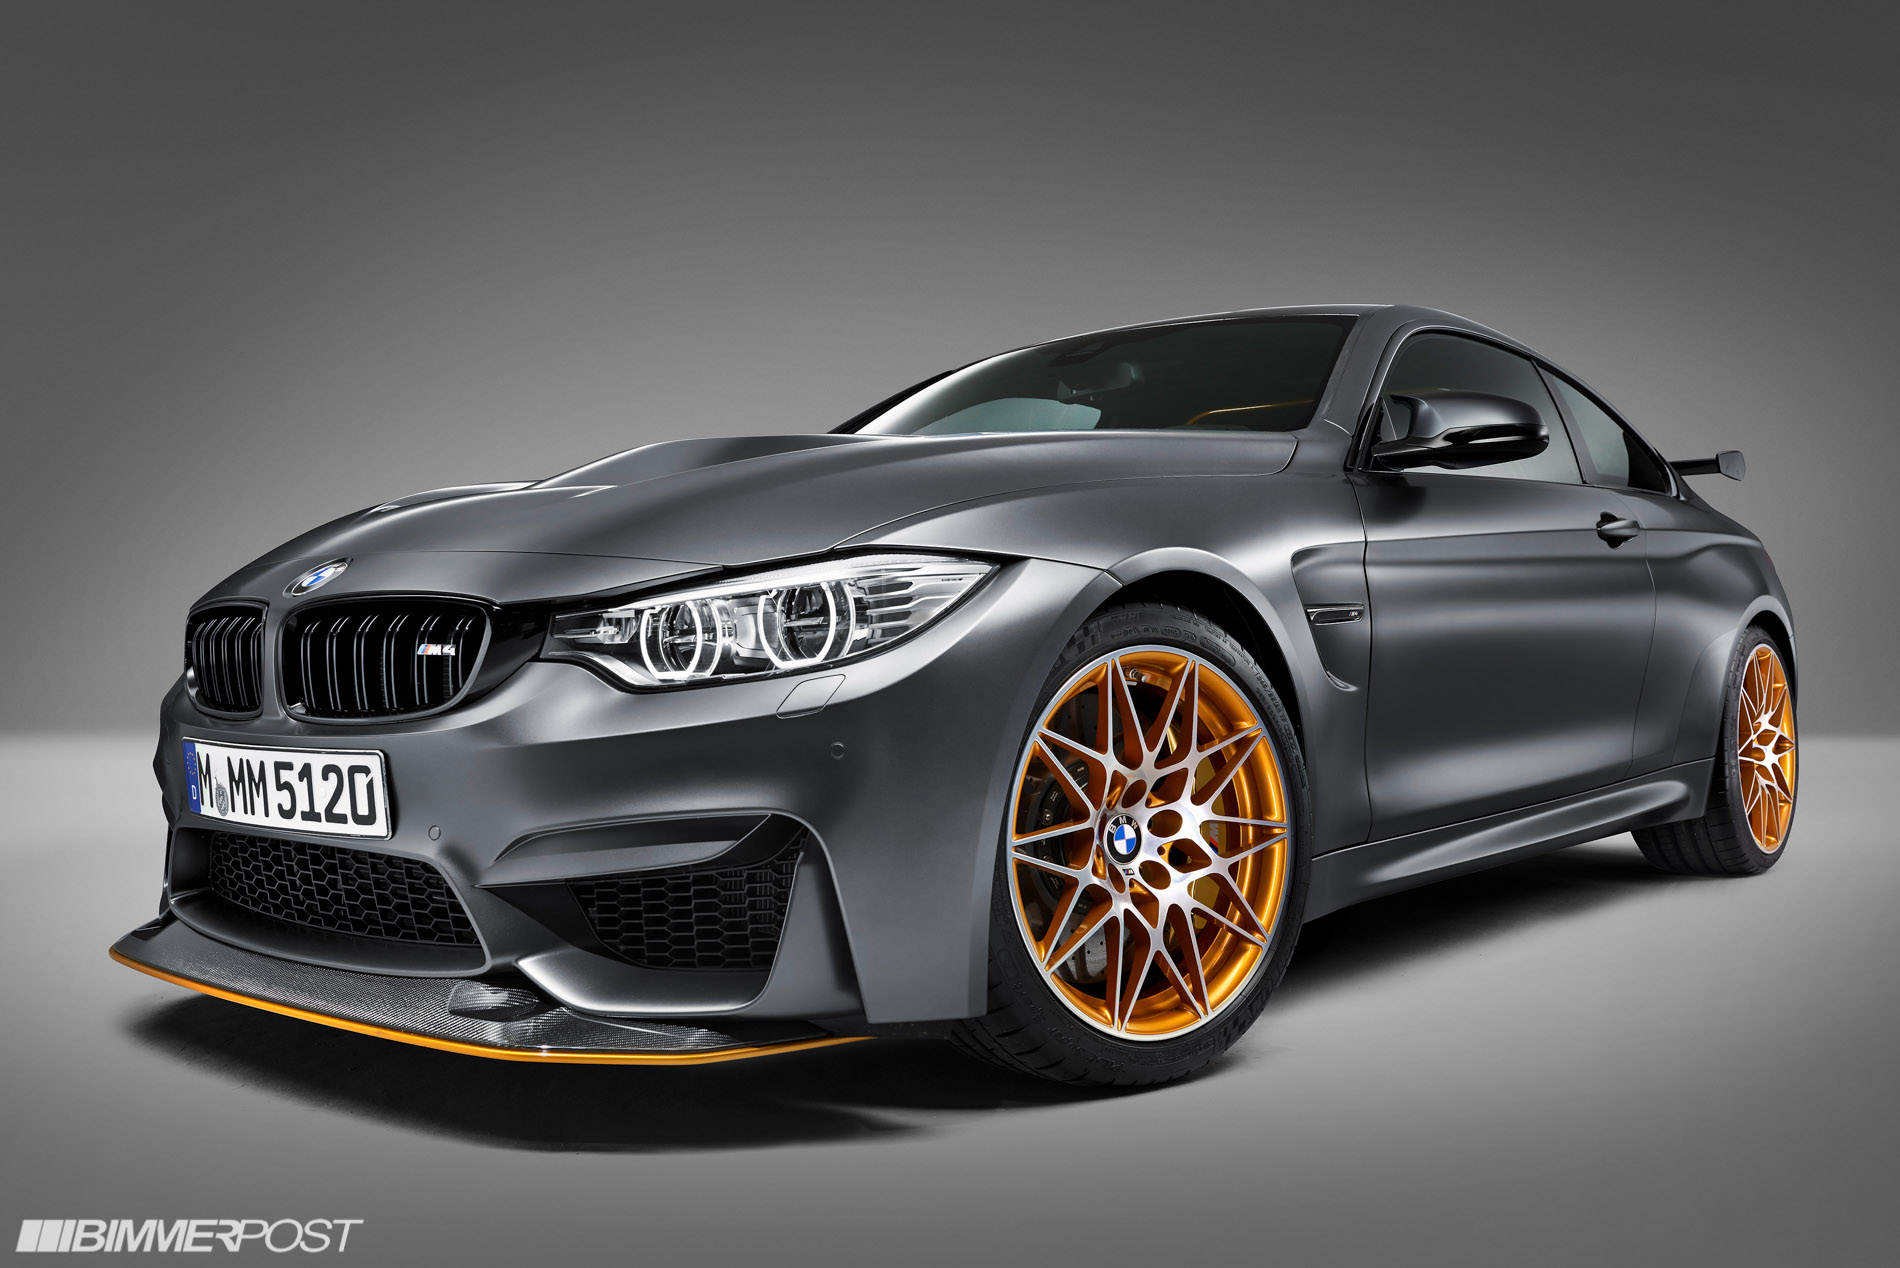 bimmerpost first drive bmw m4 gts the apex predator. Black Bedroom Furniture Sets. Home Design Ideas